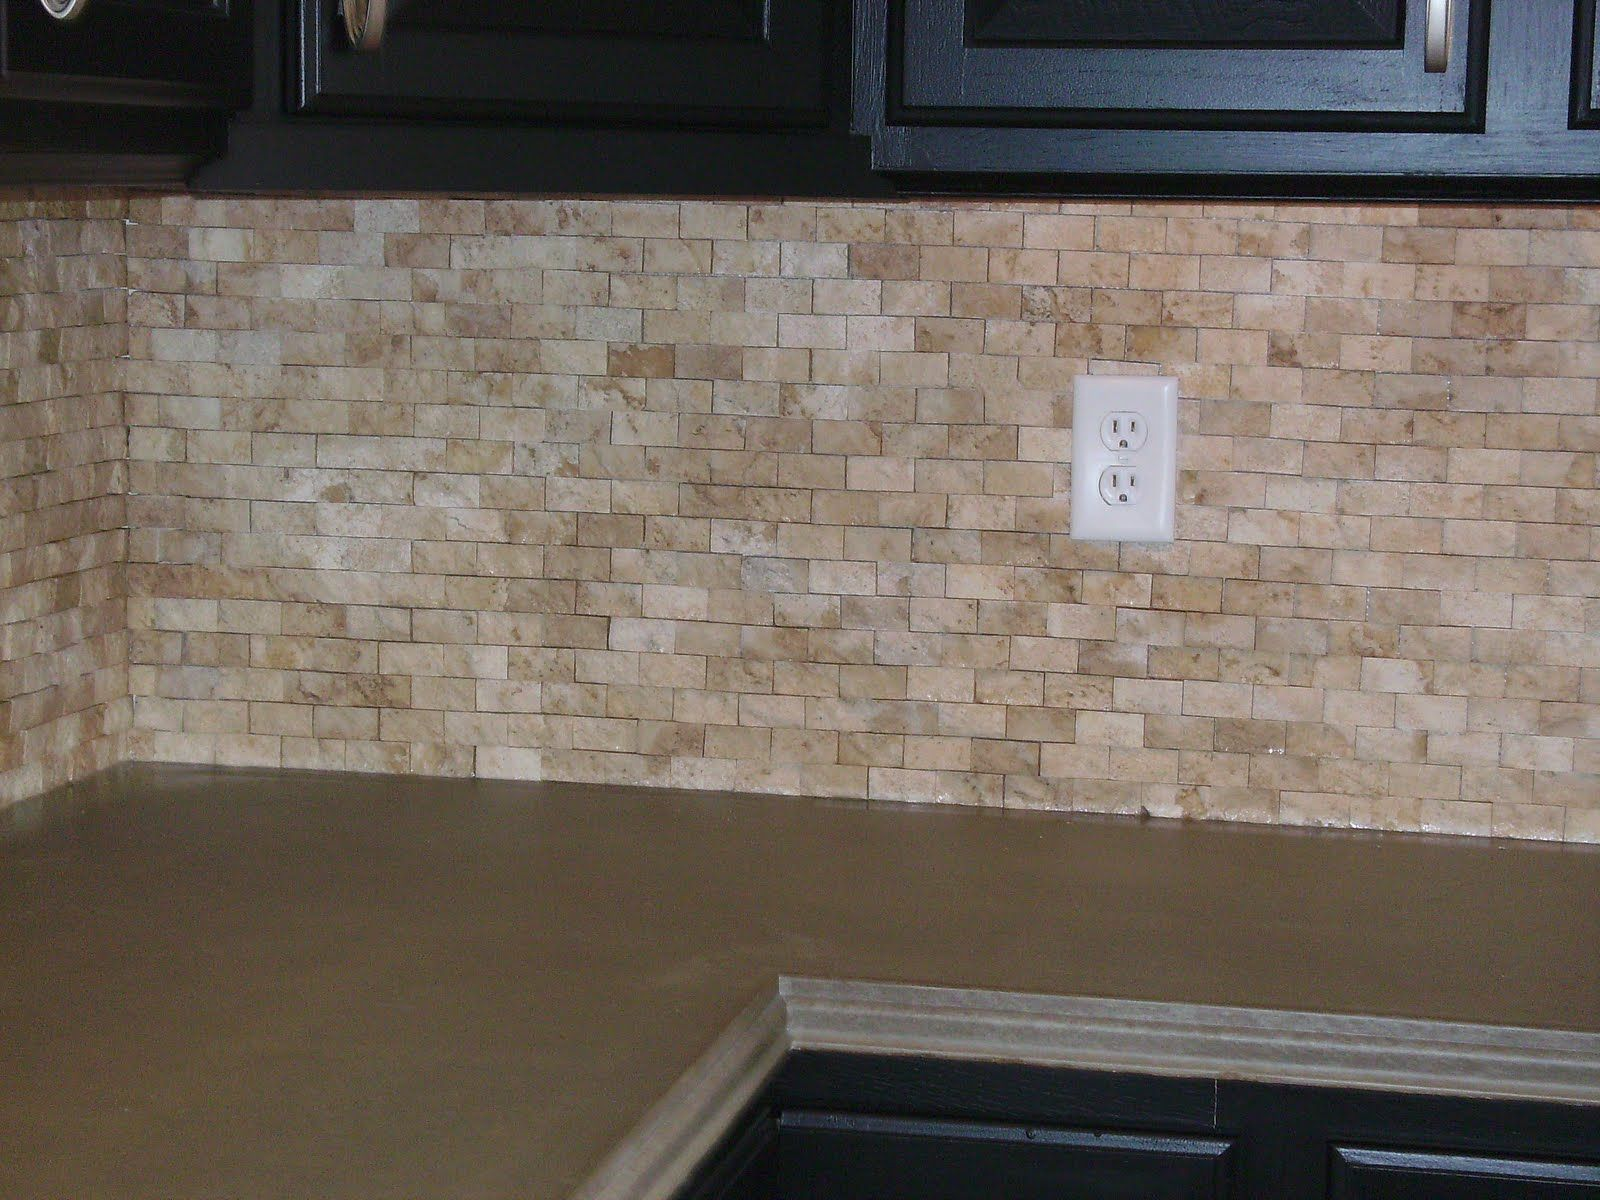 Natural Stone Backsplash Considering This For The Bathroom On Wall Or In Kitchen As A